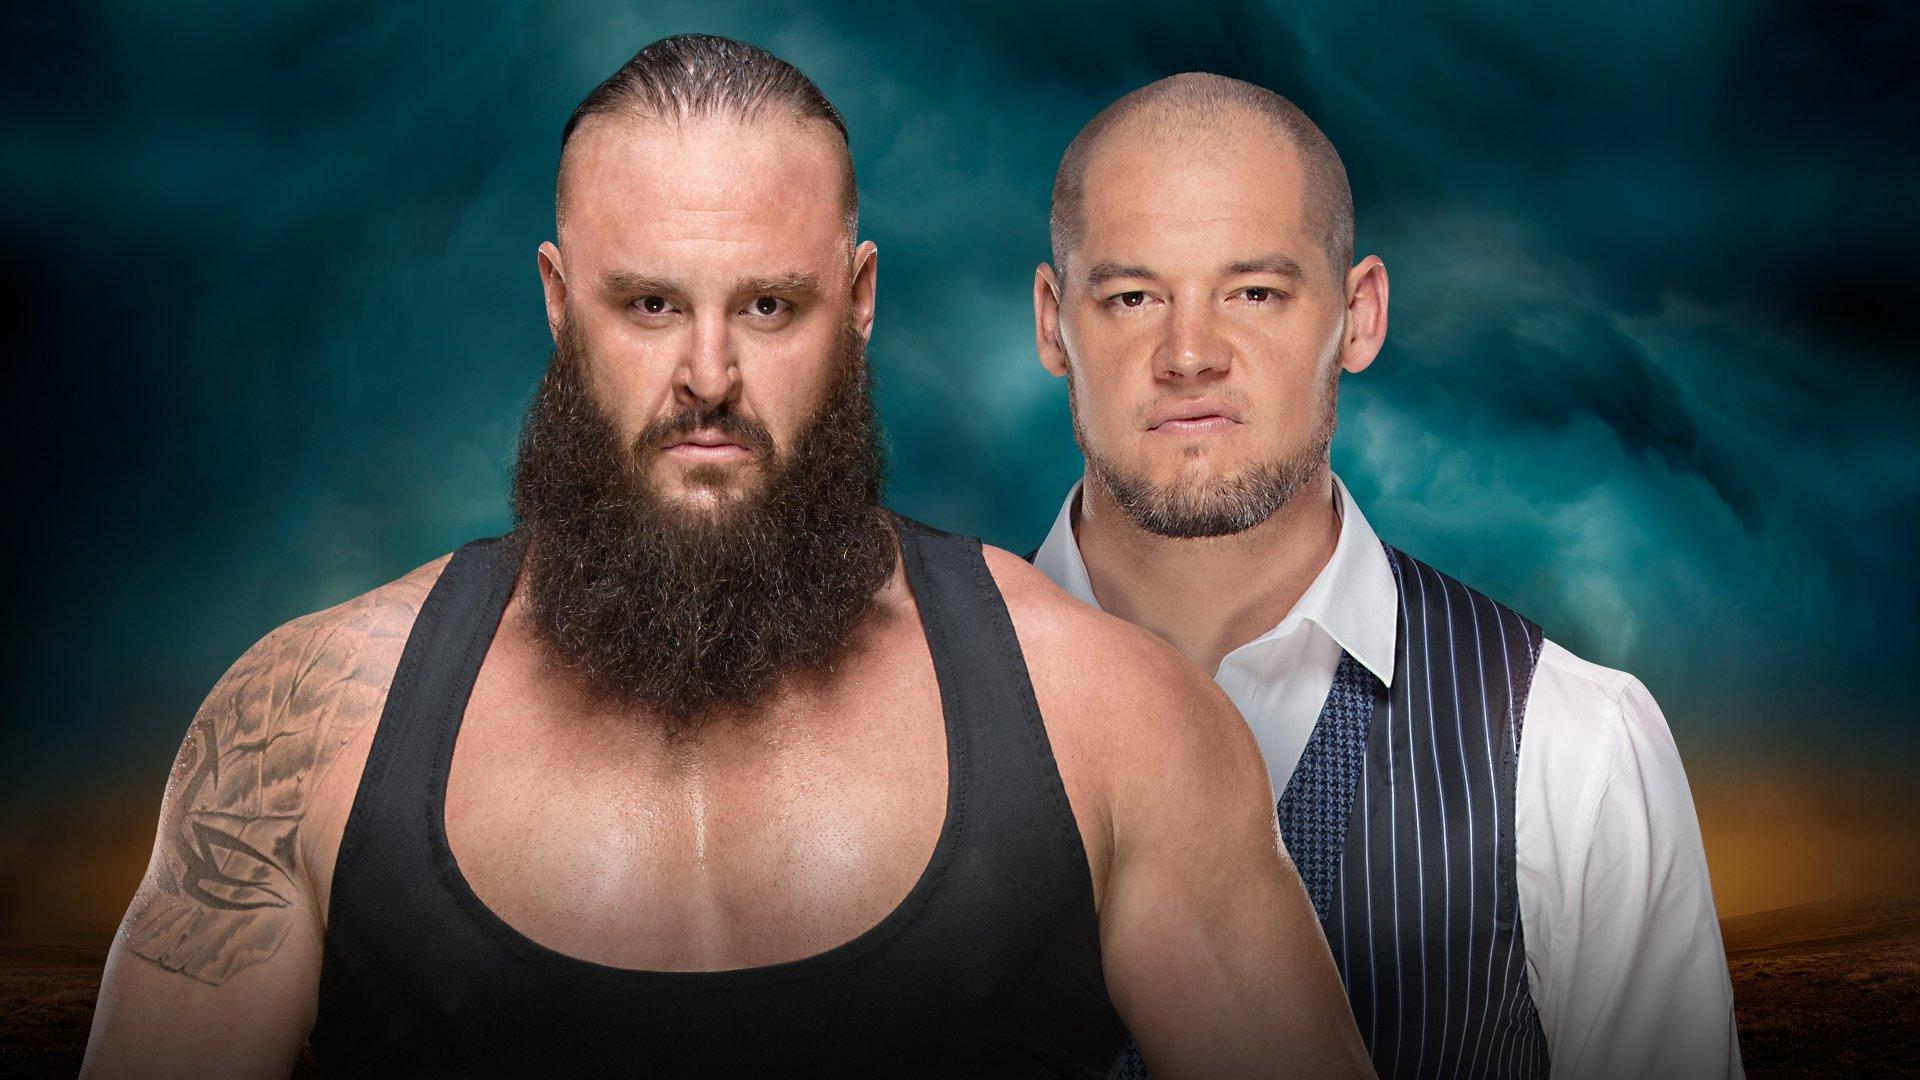 Braun Strowman vs Baron Corbin (Tables, Ladders & Chairs Match)